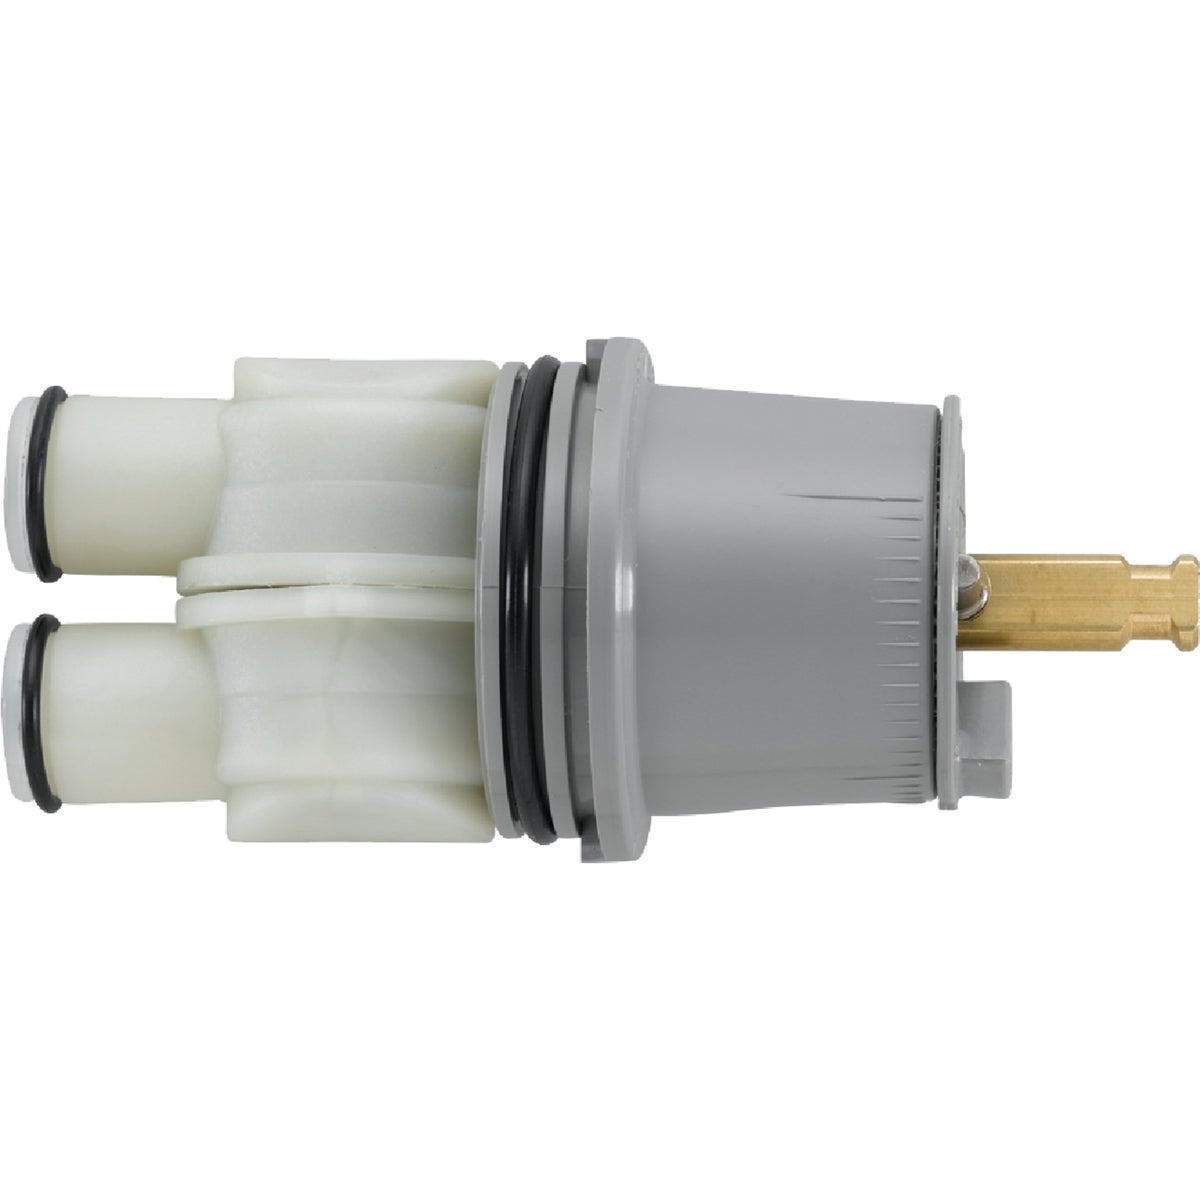 TUB SHOWER CARTRIDGE - RP46074 by Delta Faucet Co